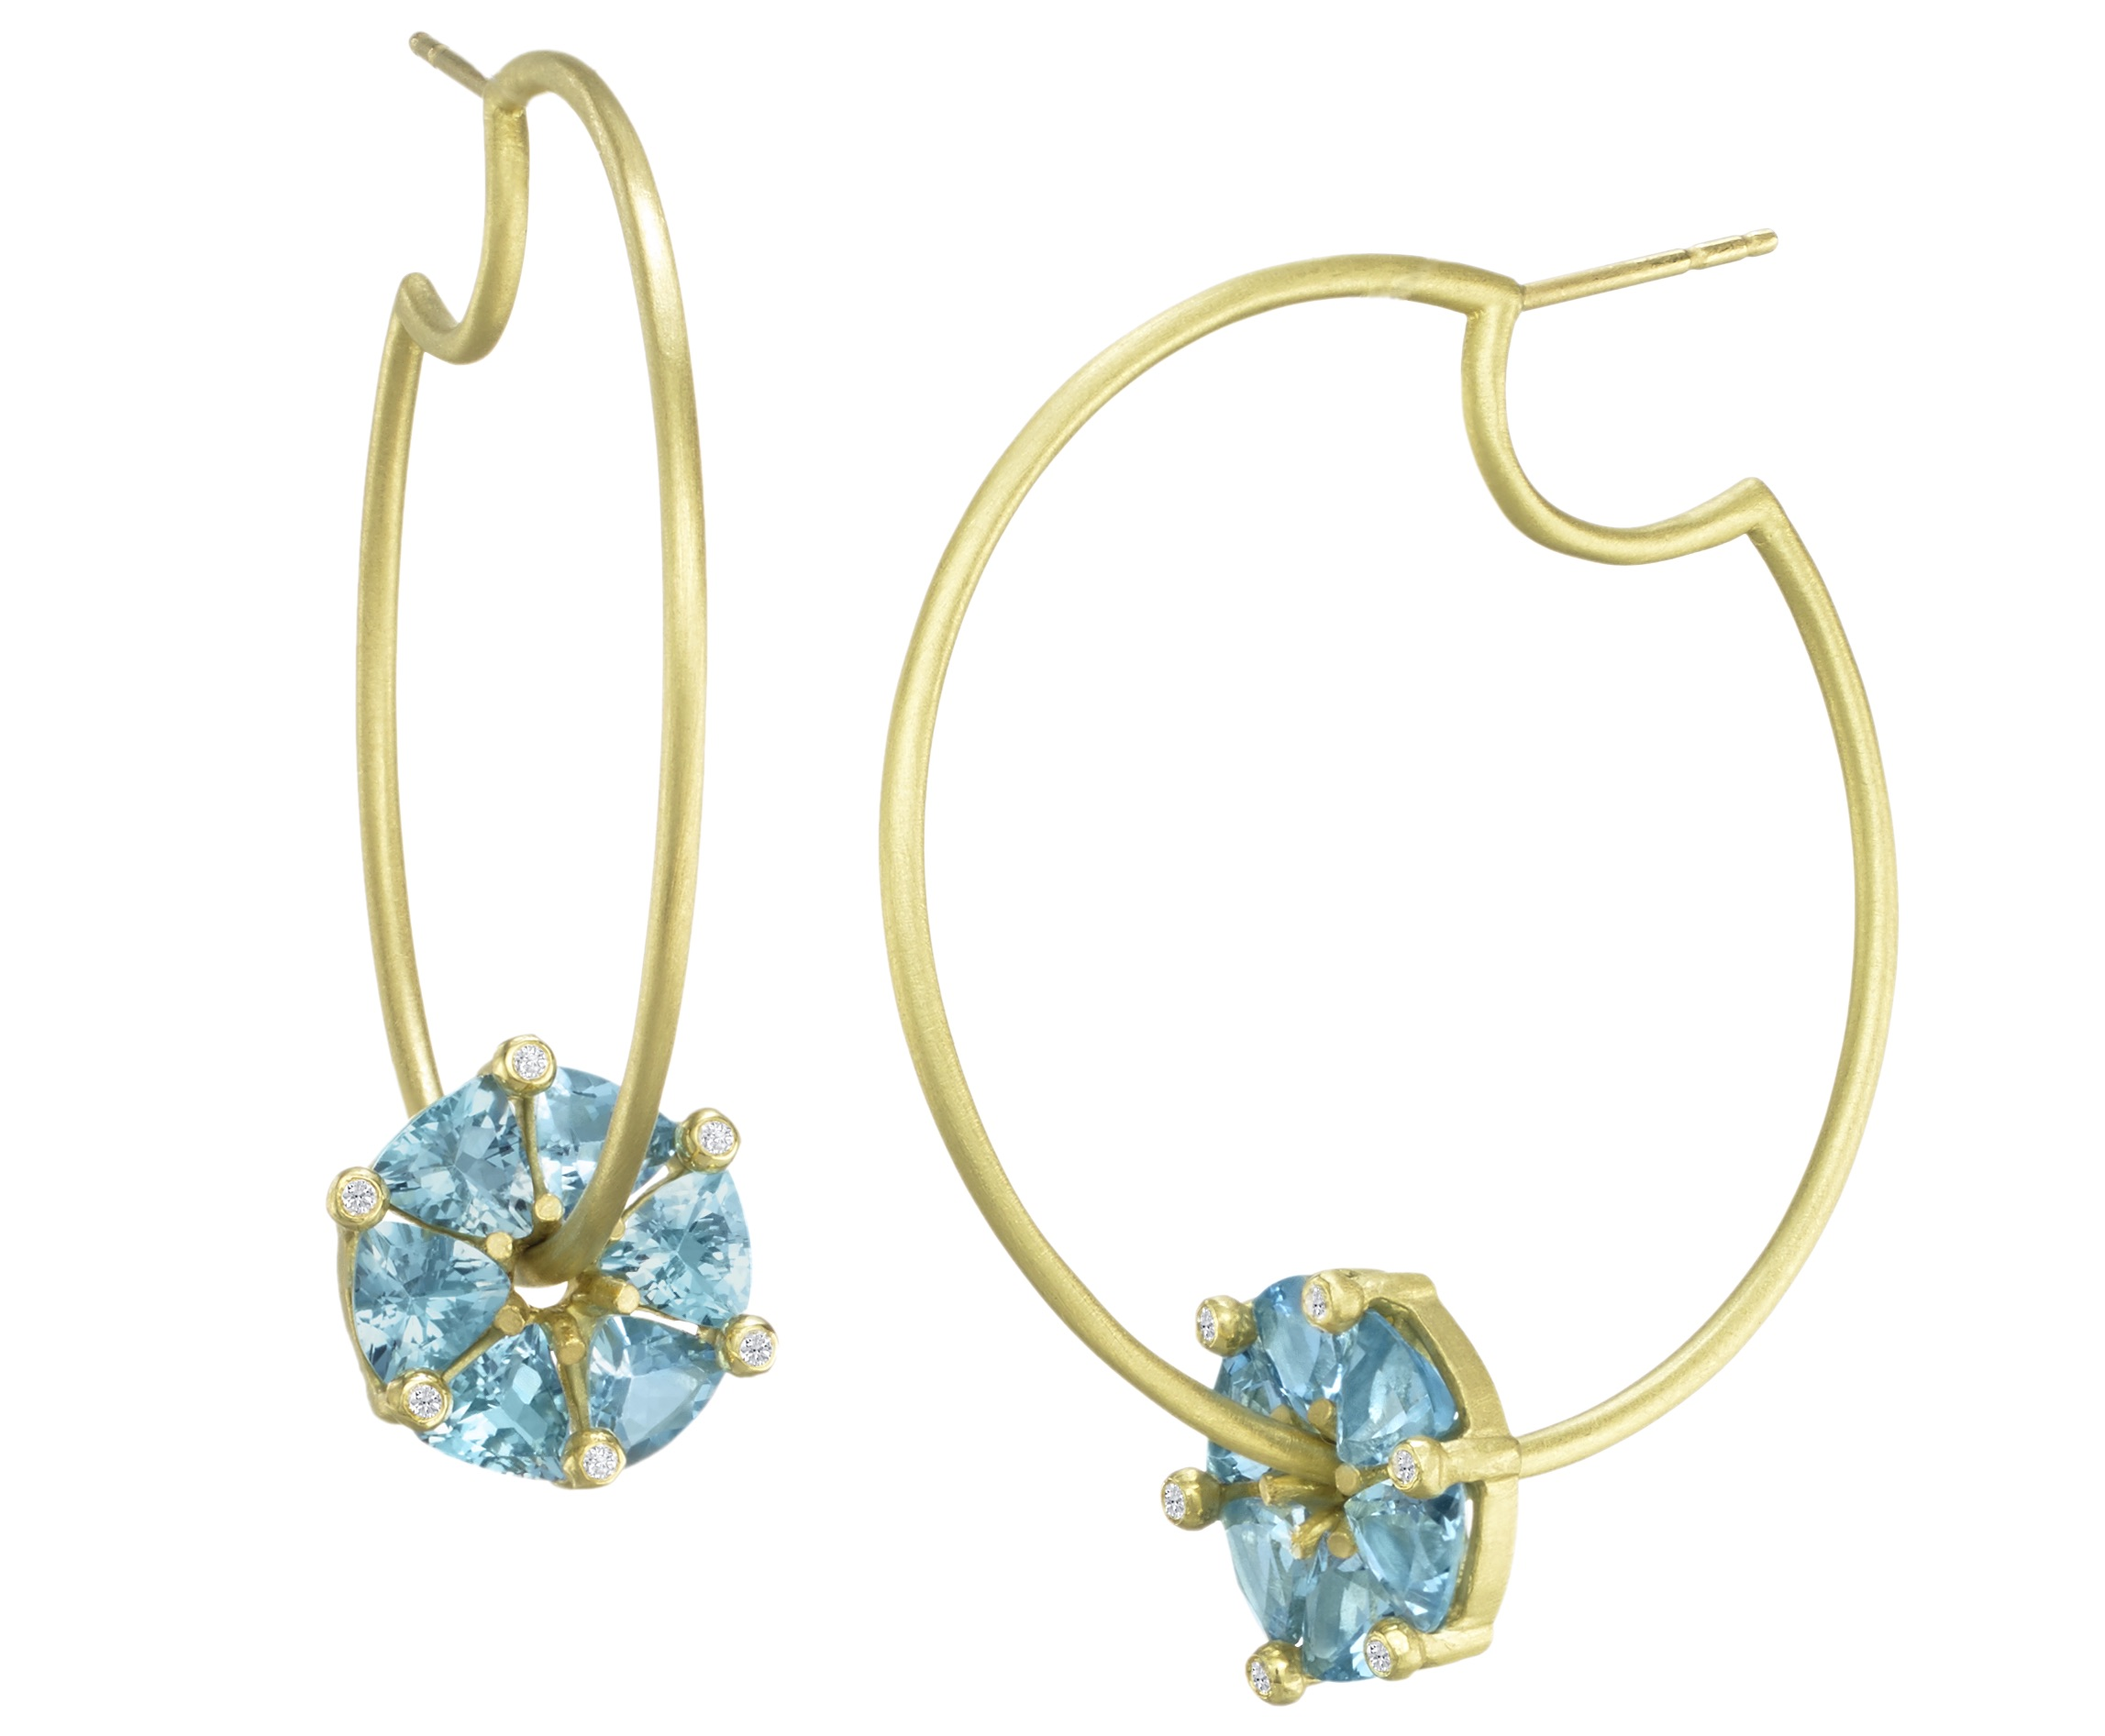 Suzy Landa spinning gemstone hoop earrings | JCK On Your Market